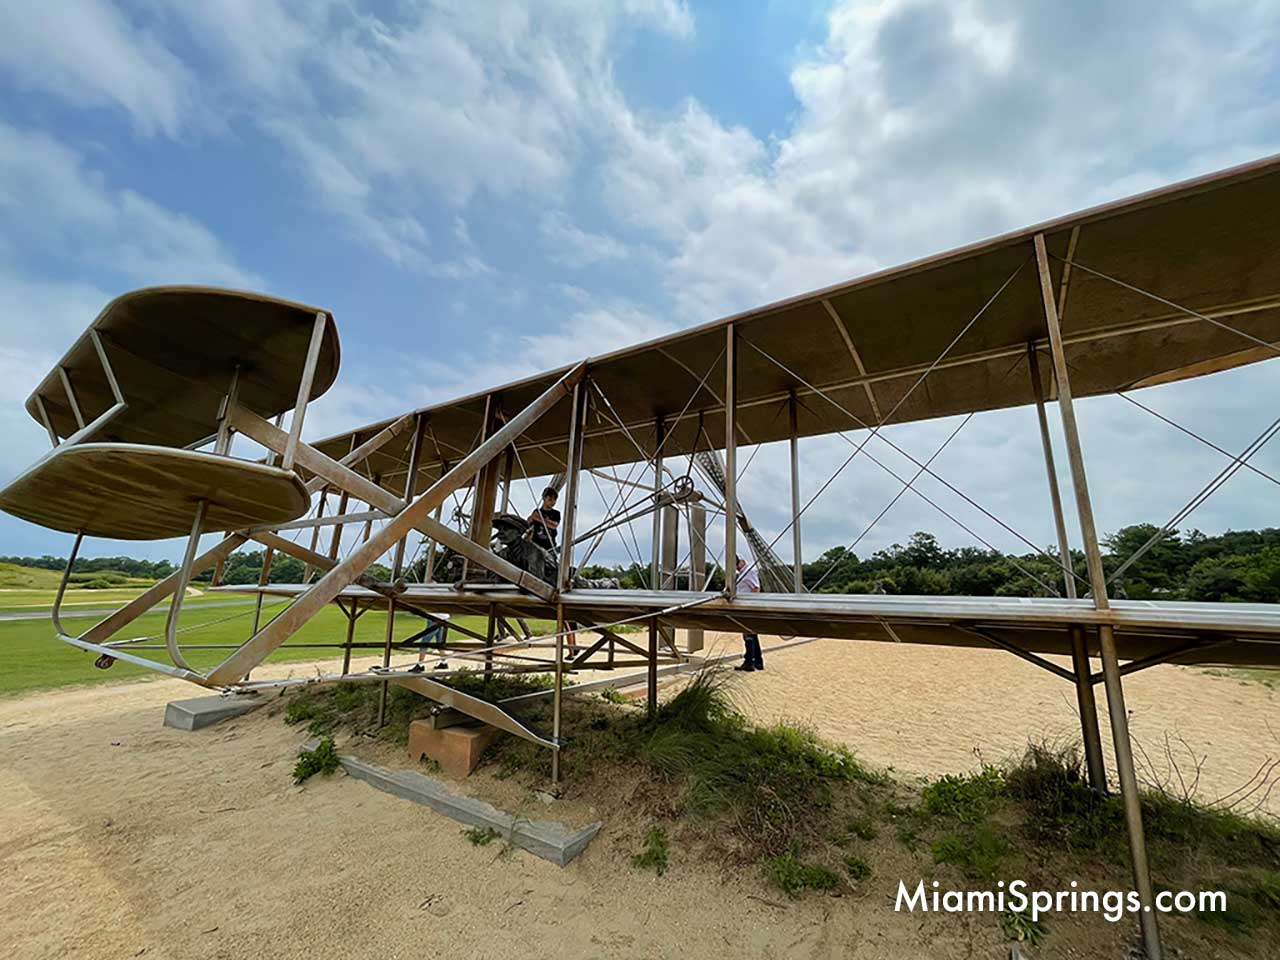 Outdoor Metal Replica of the Wright Flyer at Kitty Hawk, NC